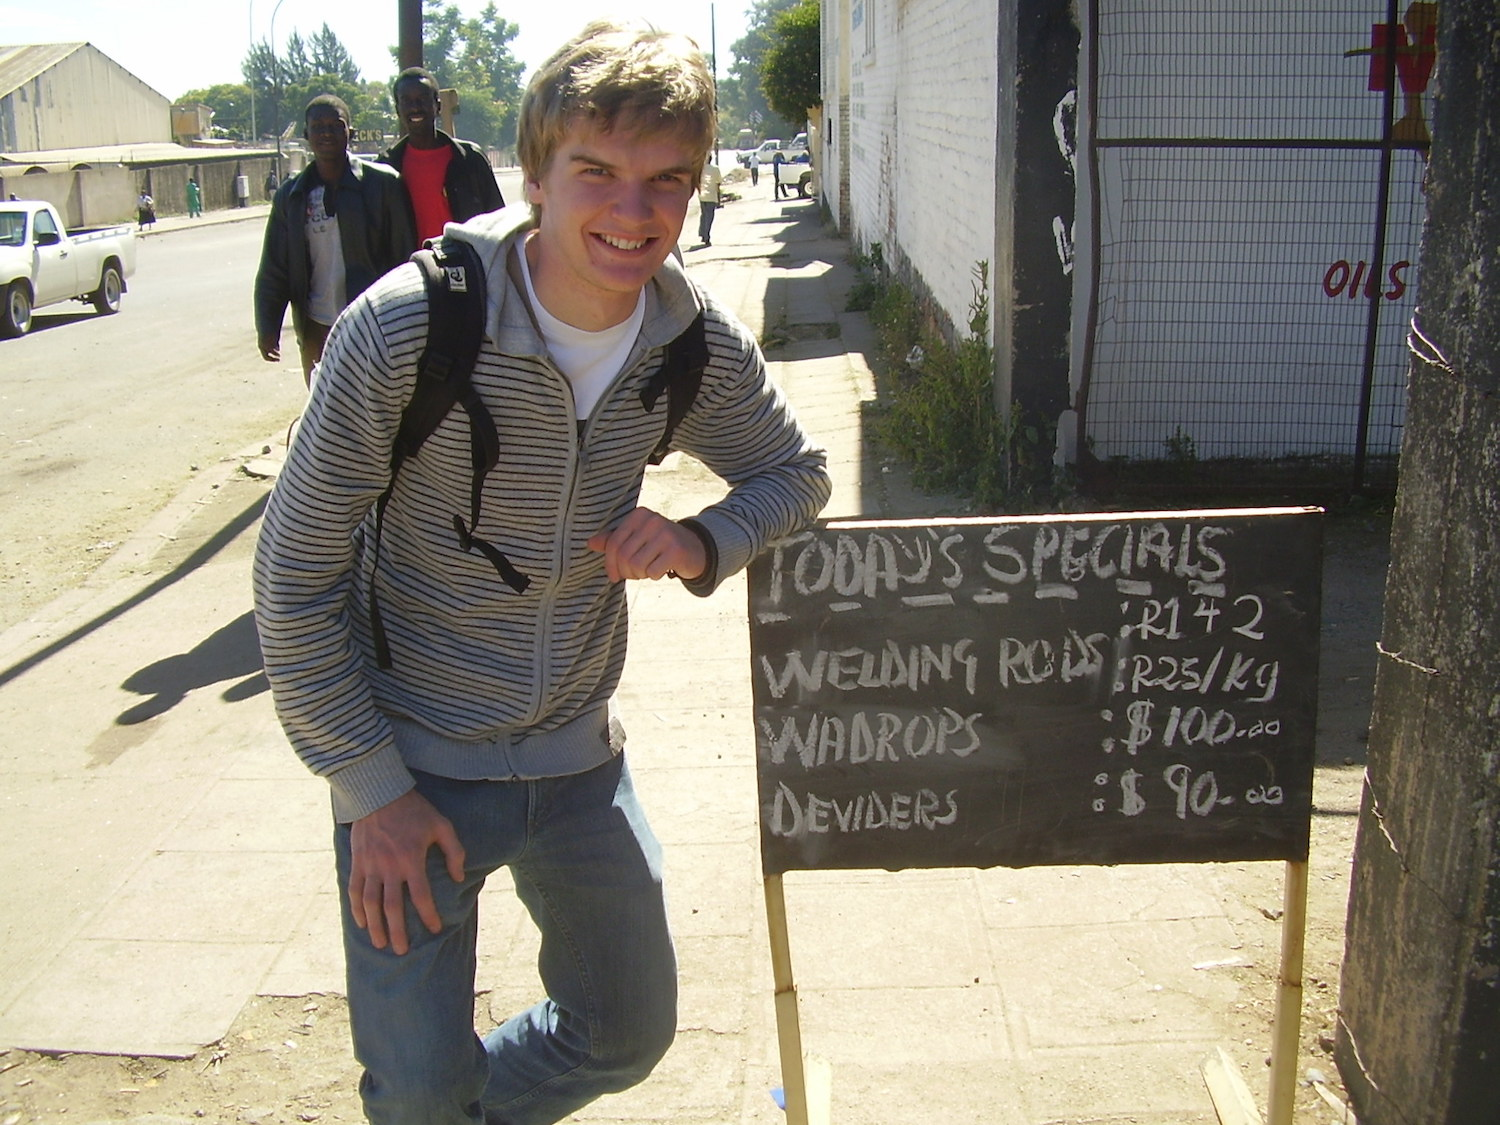 Pic:Fabian finds some deals on hardware products in Bulawayo. Note the first two prices are quoted in South African Rand, the next two in US Dollars.